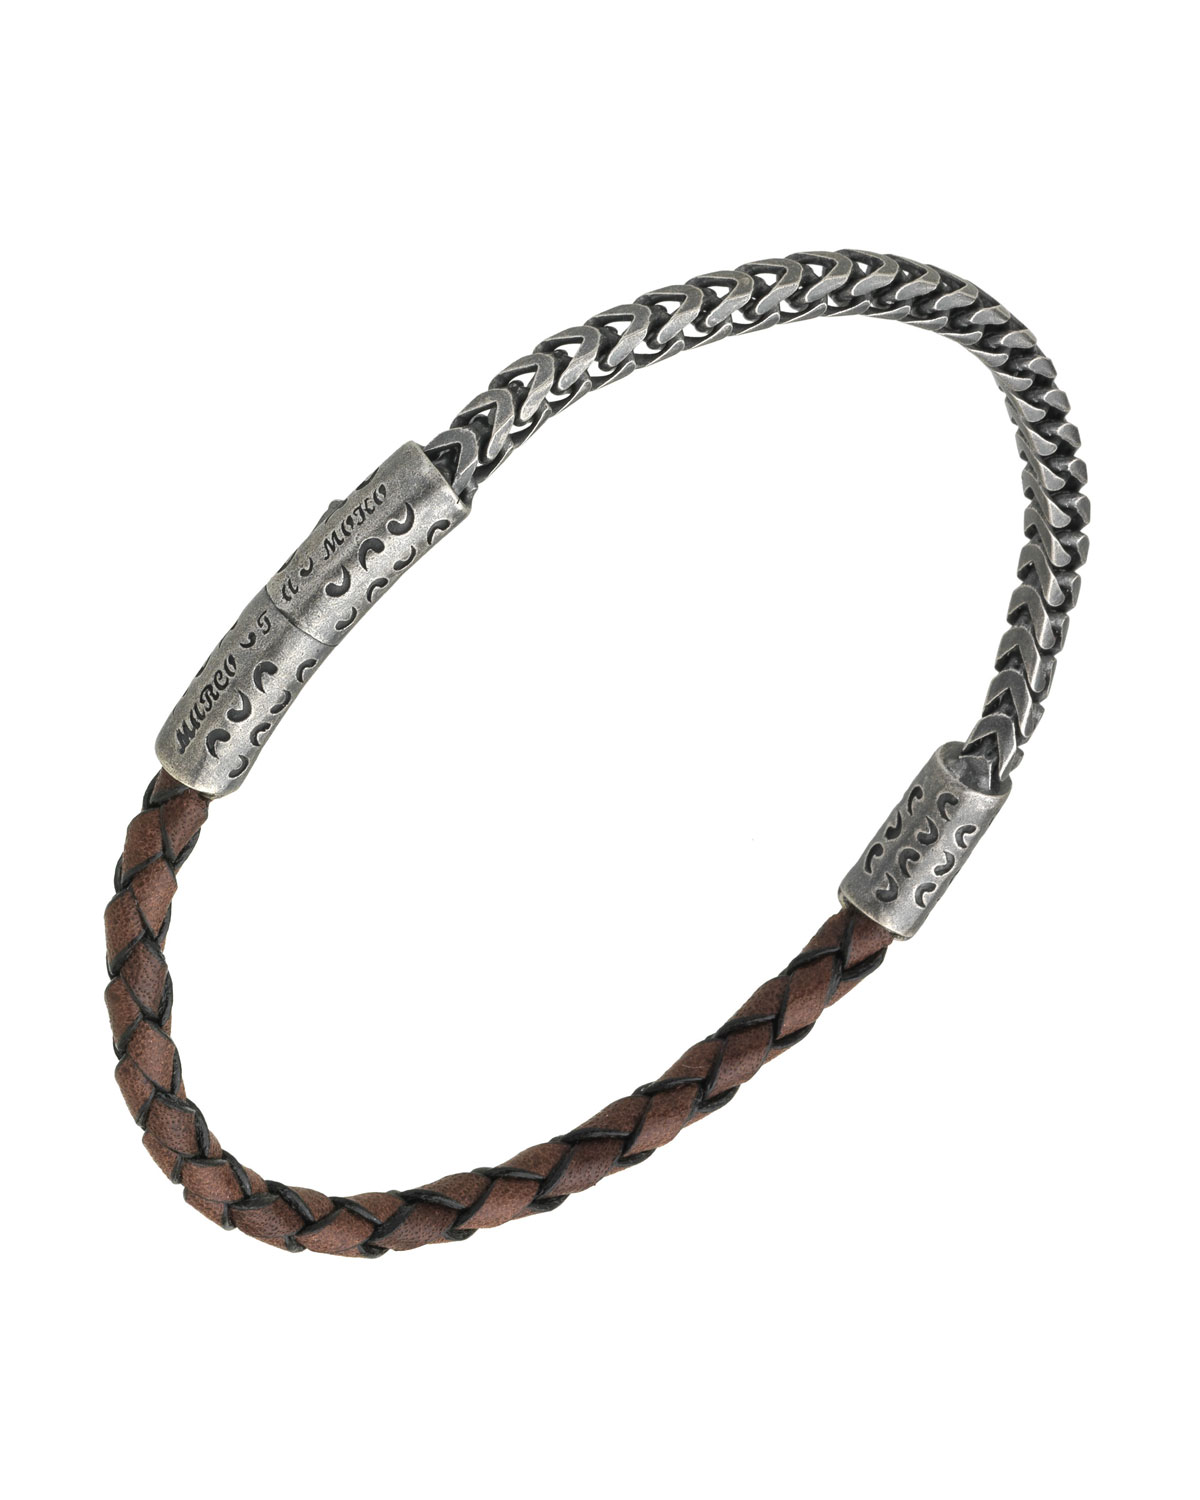 MARCO DAL MASO MEN'S STERLING SILVER & LEATHER BRACELET, BROWN